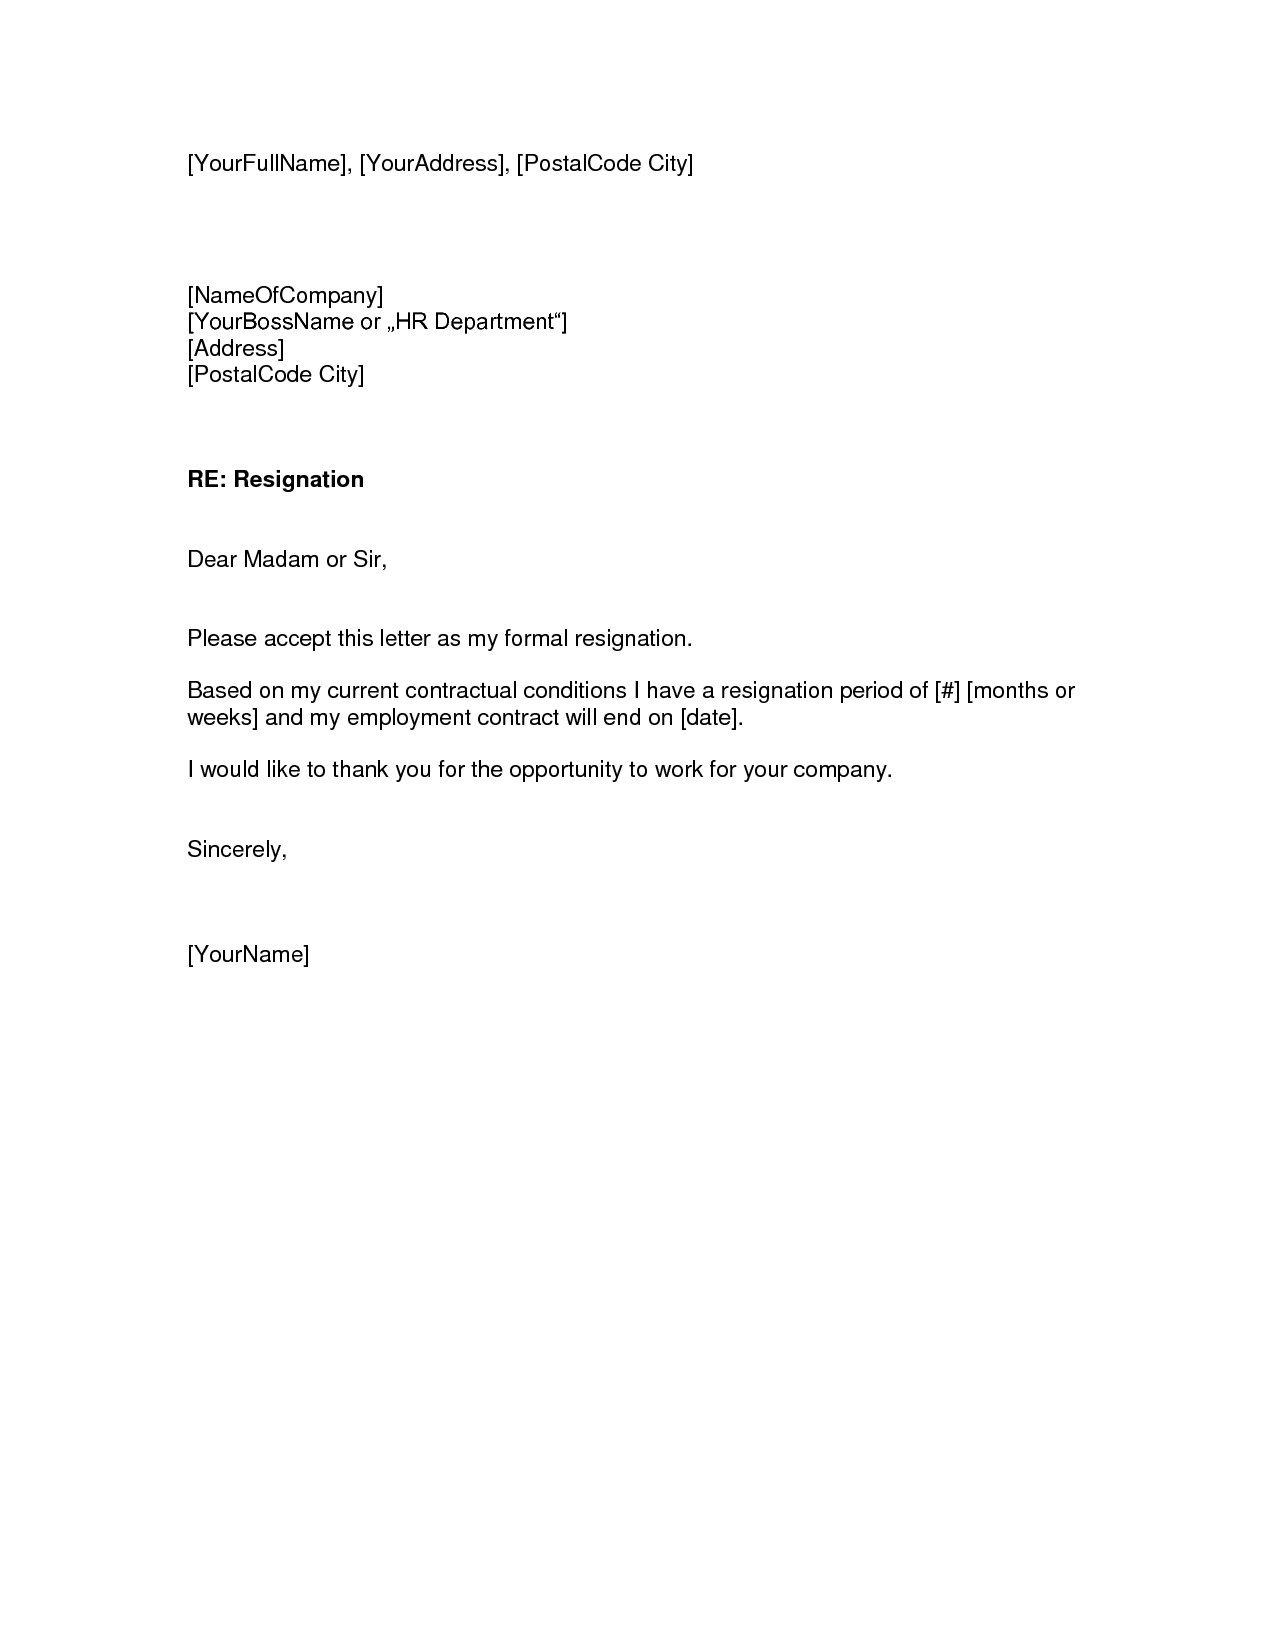 sample resignation letter gresremmyvolunteer letter template sample resignation letter gresremmyvolunteer letter template application letter sample